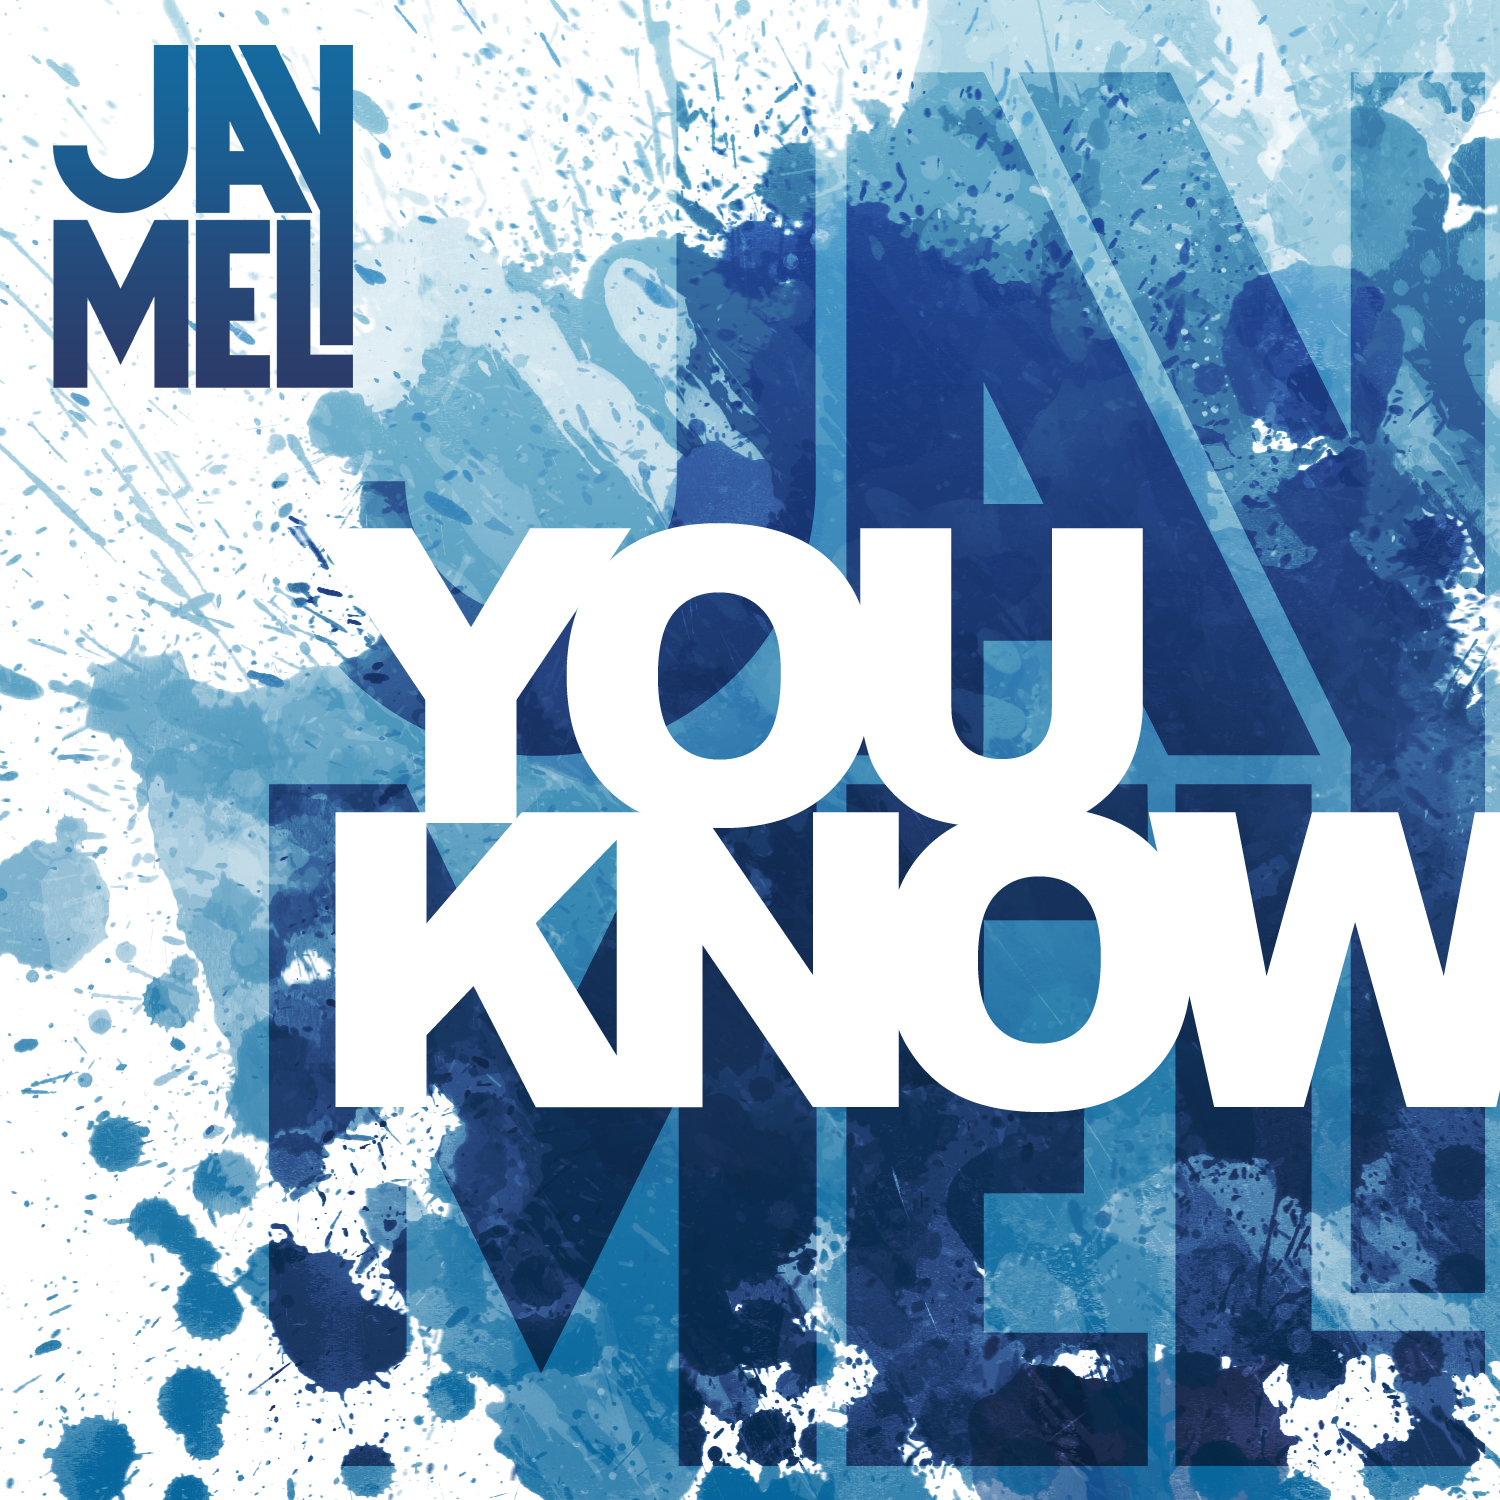 Jay Mel - You Know Cover